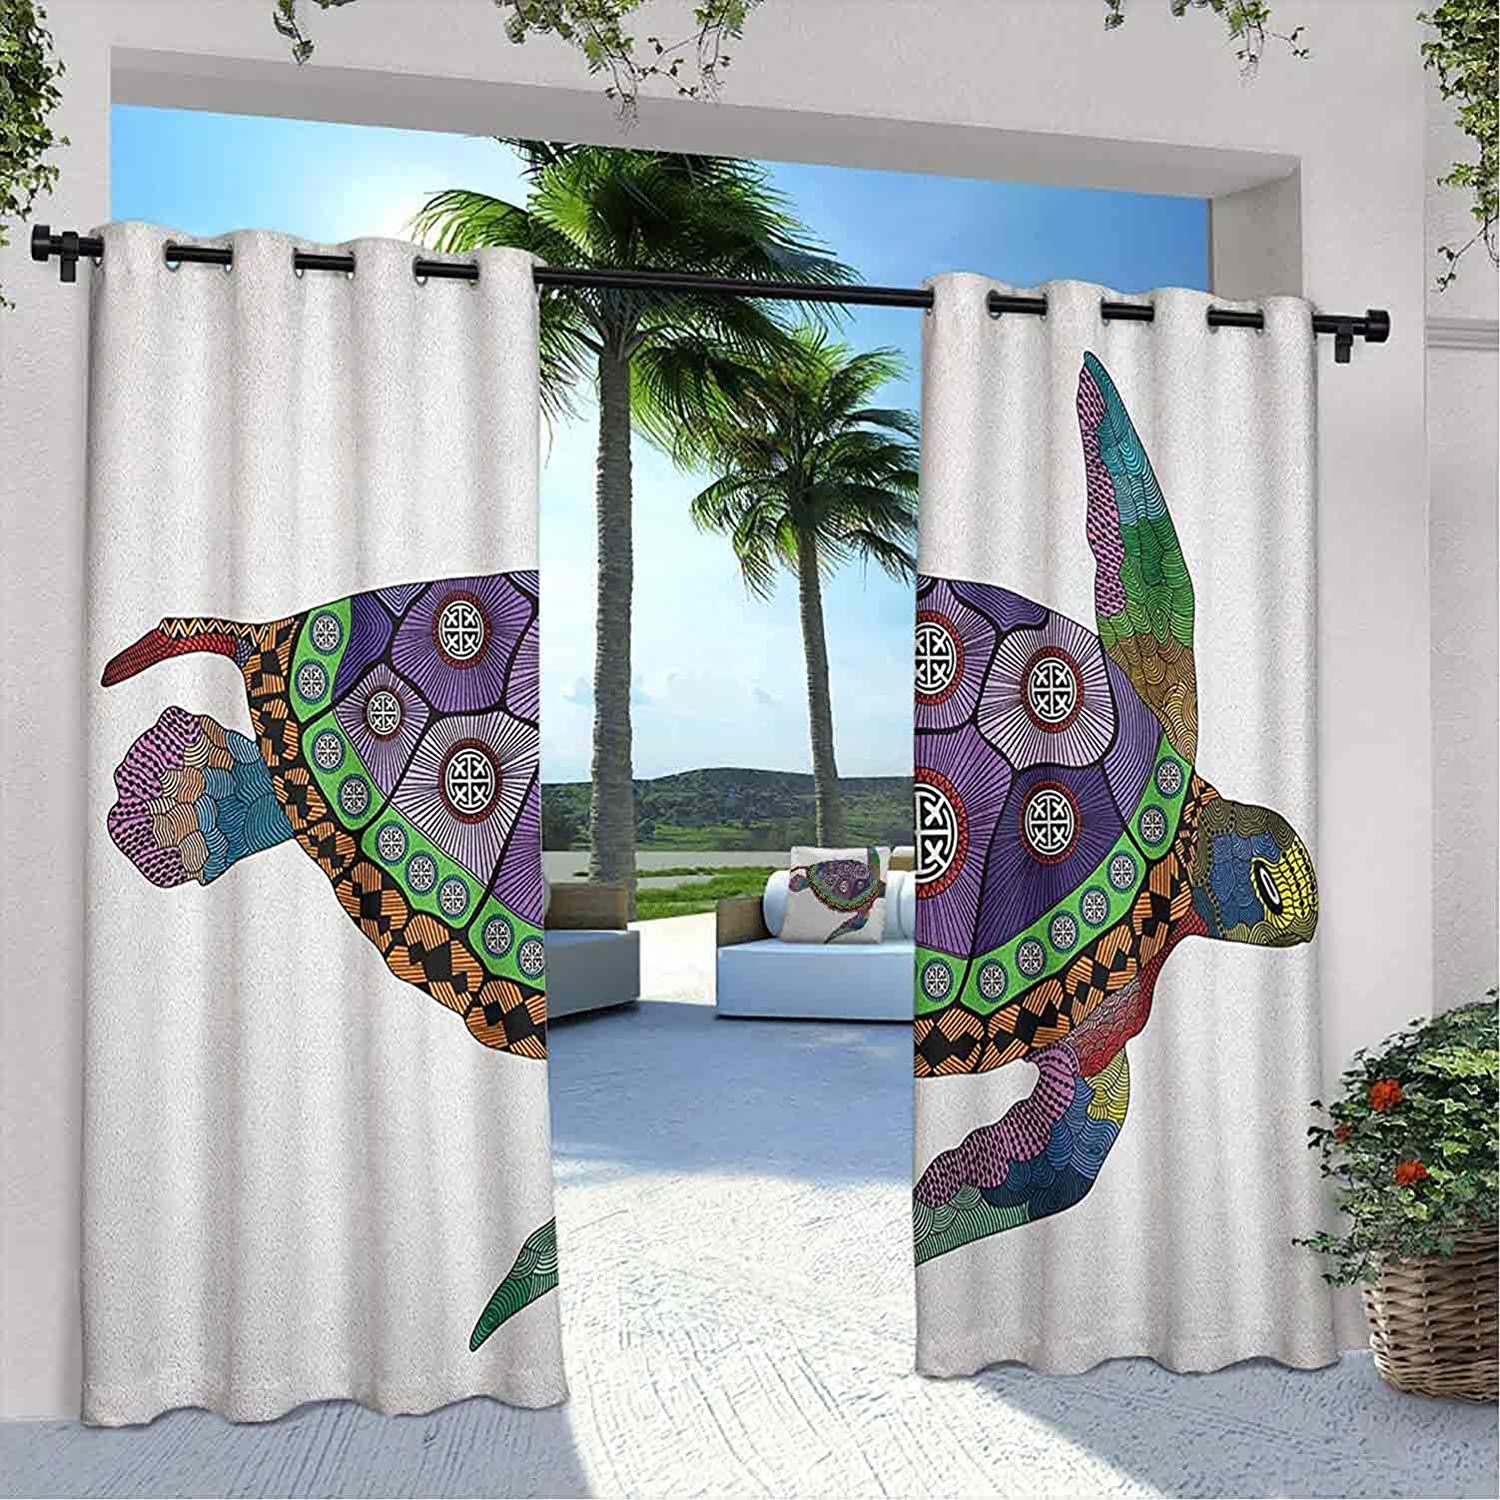 Time sale Outdoor Privacy Psychedelic Curtain Sea Turtle Or Colorful with Fixed price for sale